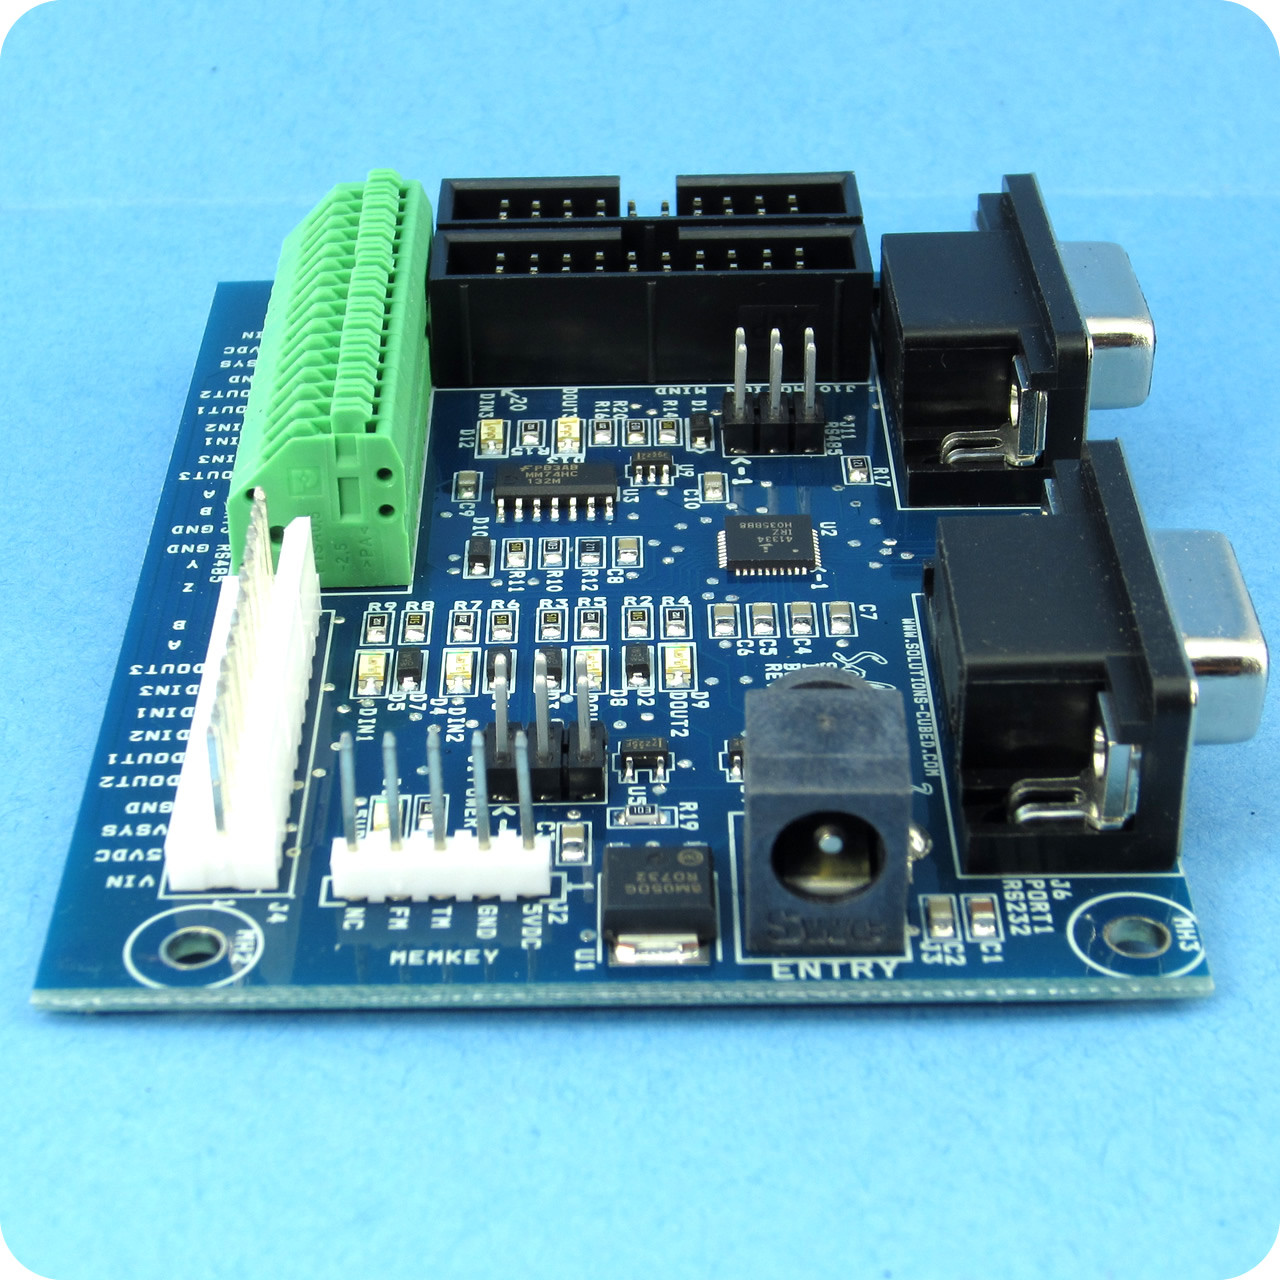 Serial Data Converter Solutions Cubed Llc Rs232 To Rs485 Sib2 Interface Board Converts 2 Channels